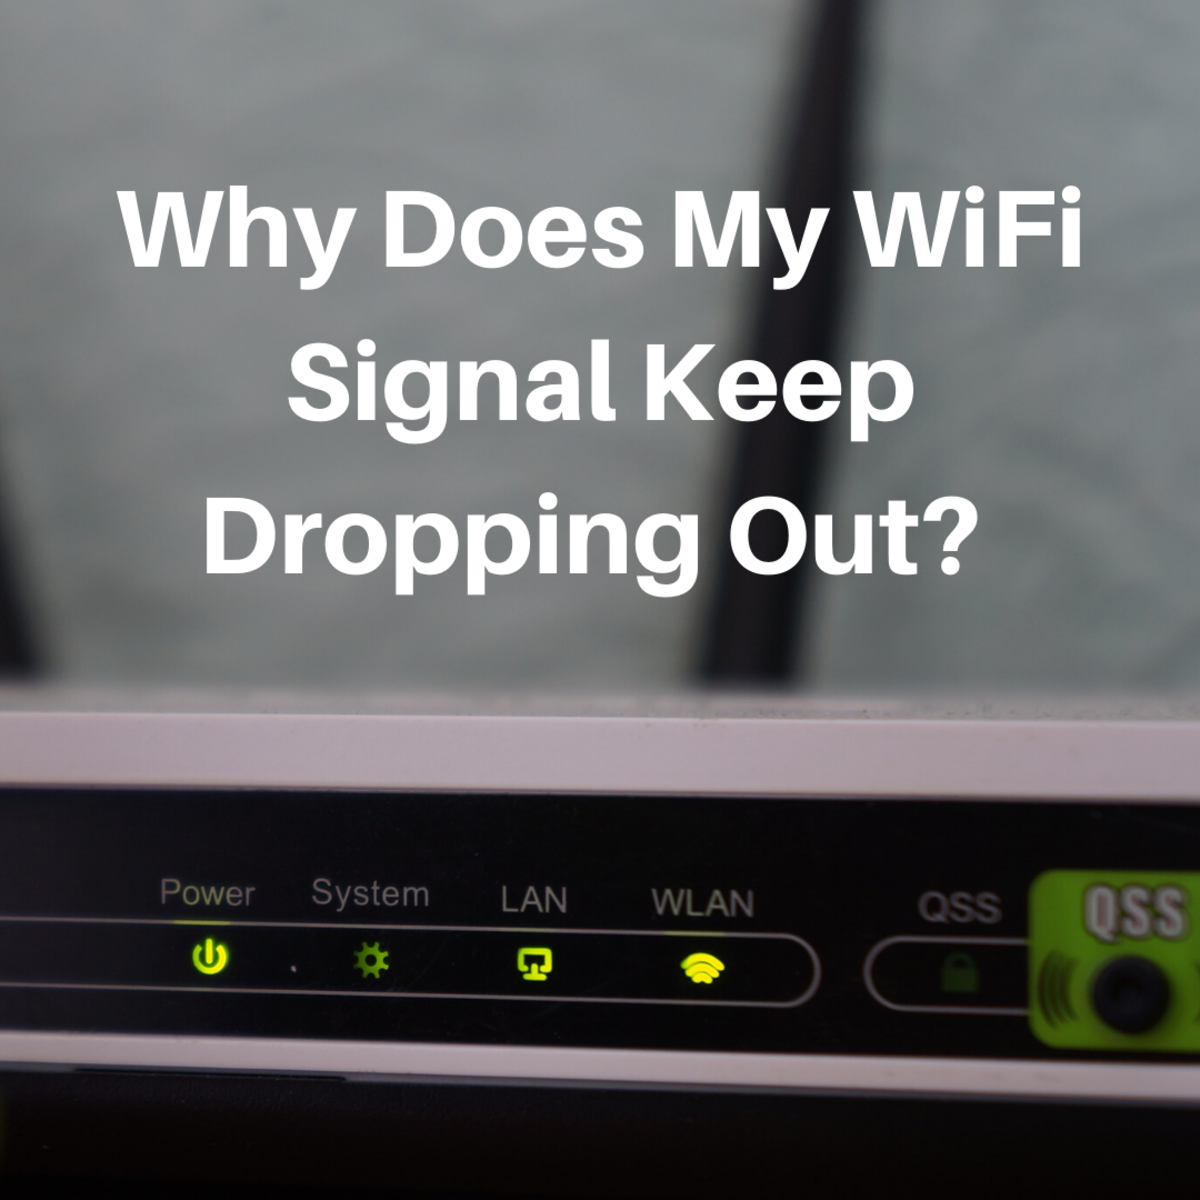 Read on to find out some tips to fix your pesky WiFi signal.